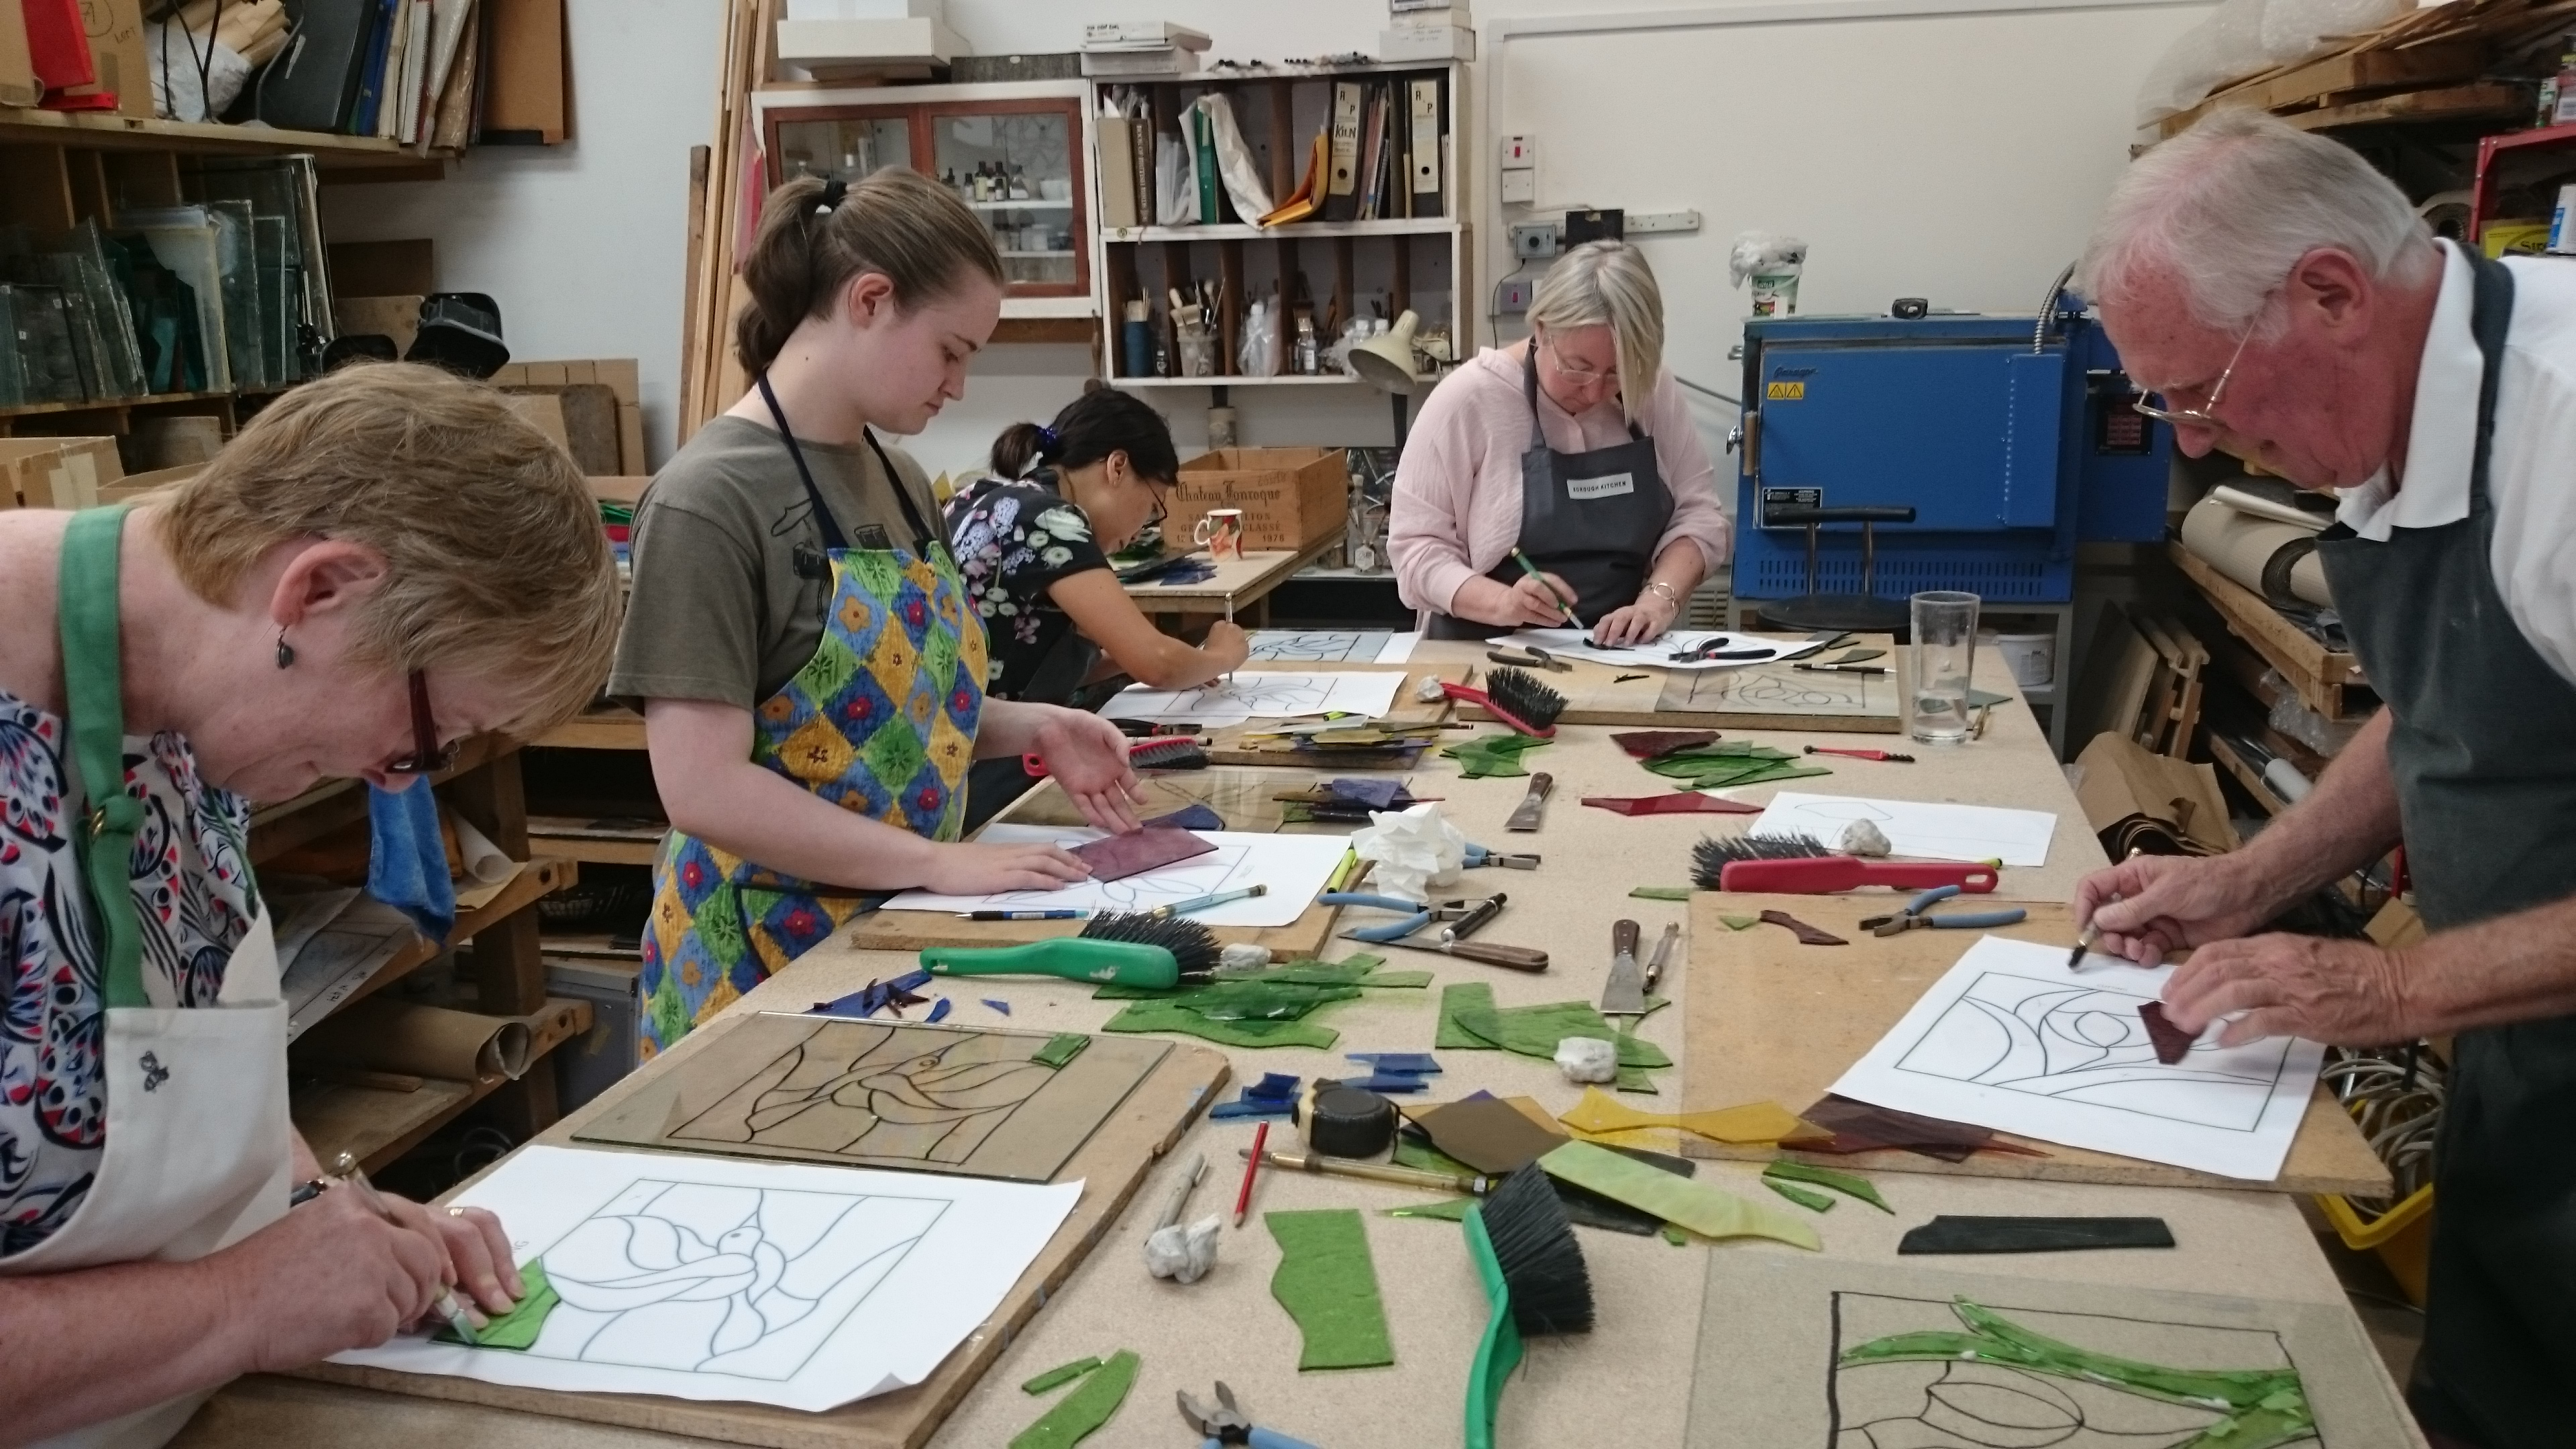 Stained Glass Weekend for Beginners - 2 days by Jude Stark Studio at The London Stained Glass Co. - crafts in London